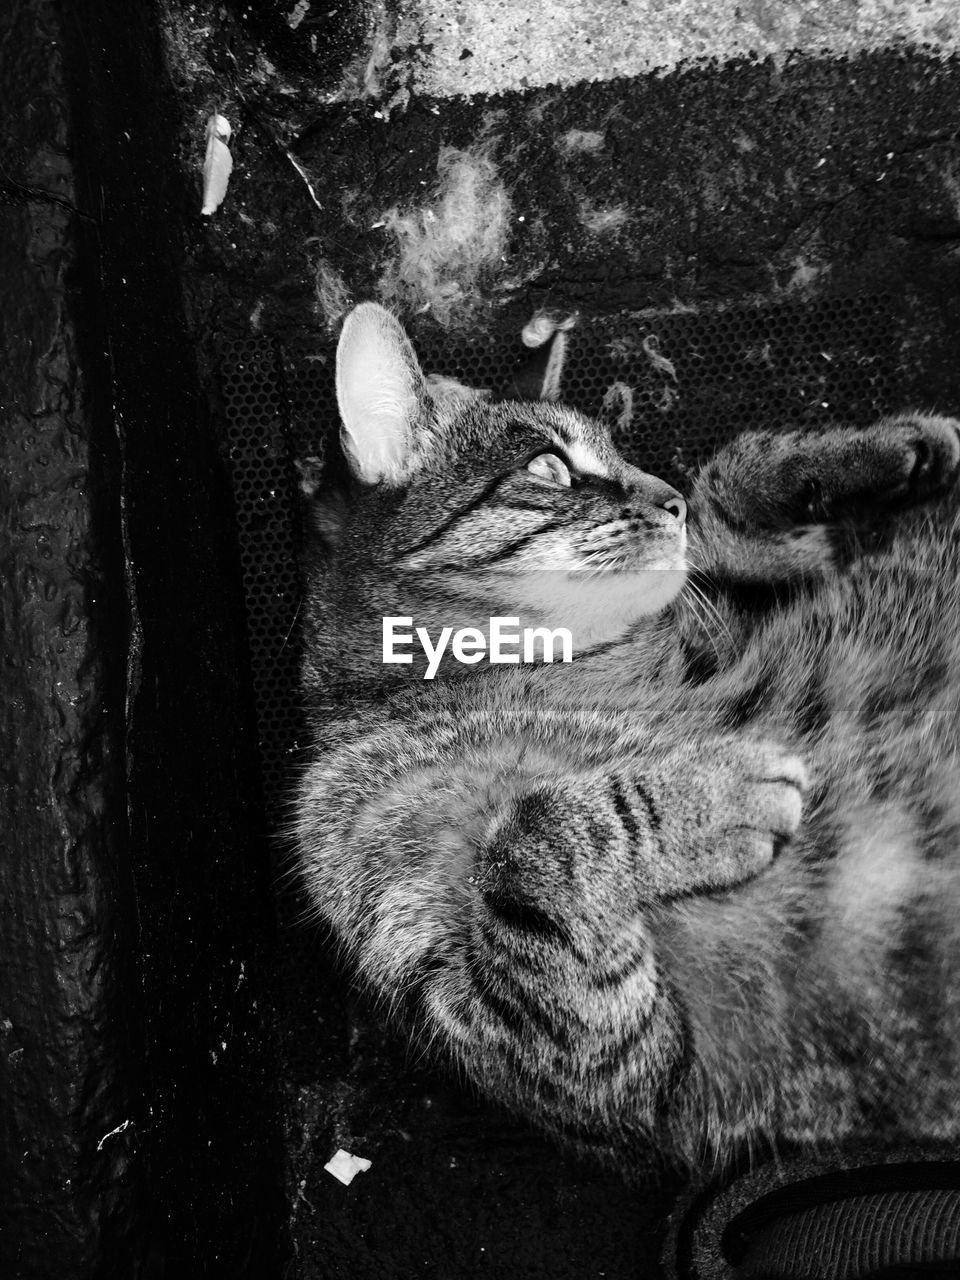 mammal, pets, animal themes, one animal, domestic animals, domestic, animal, vertebrate, relaxation, cat, feline, sleeping, domestic cat, no people, resting, close-up, animal body part, day, lying down, eyes closed, animal head, whisker